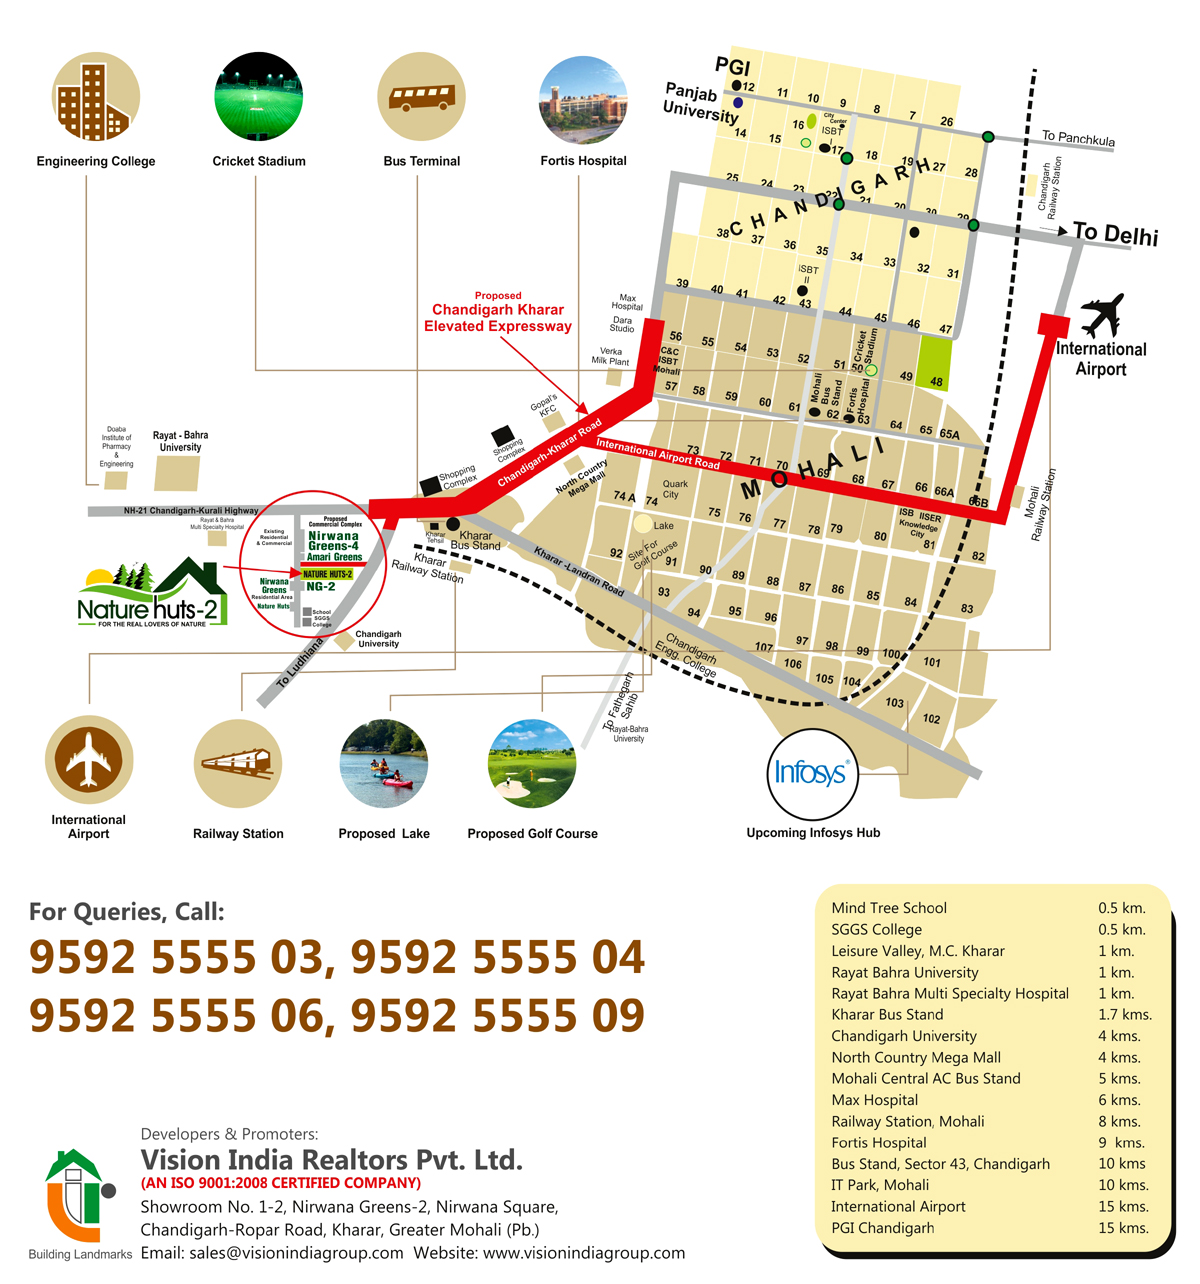 nirwana greens location map kharar